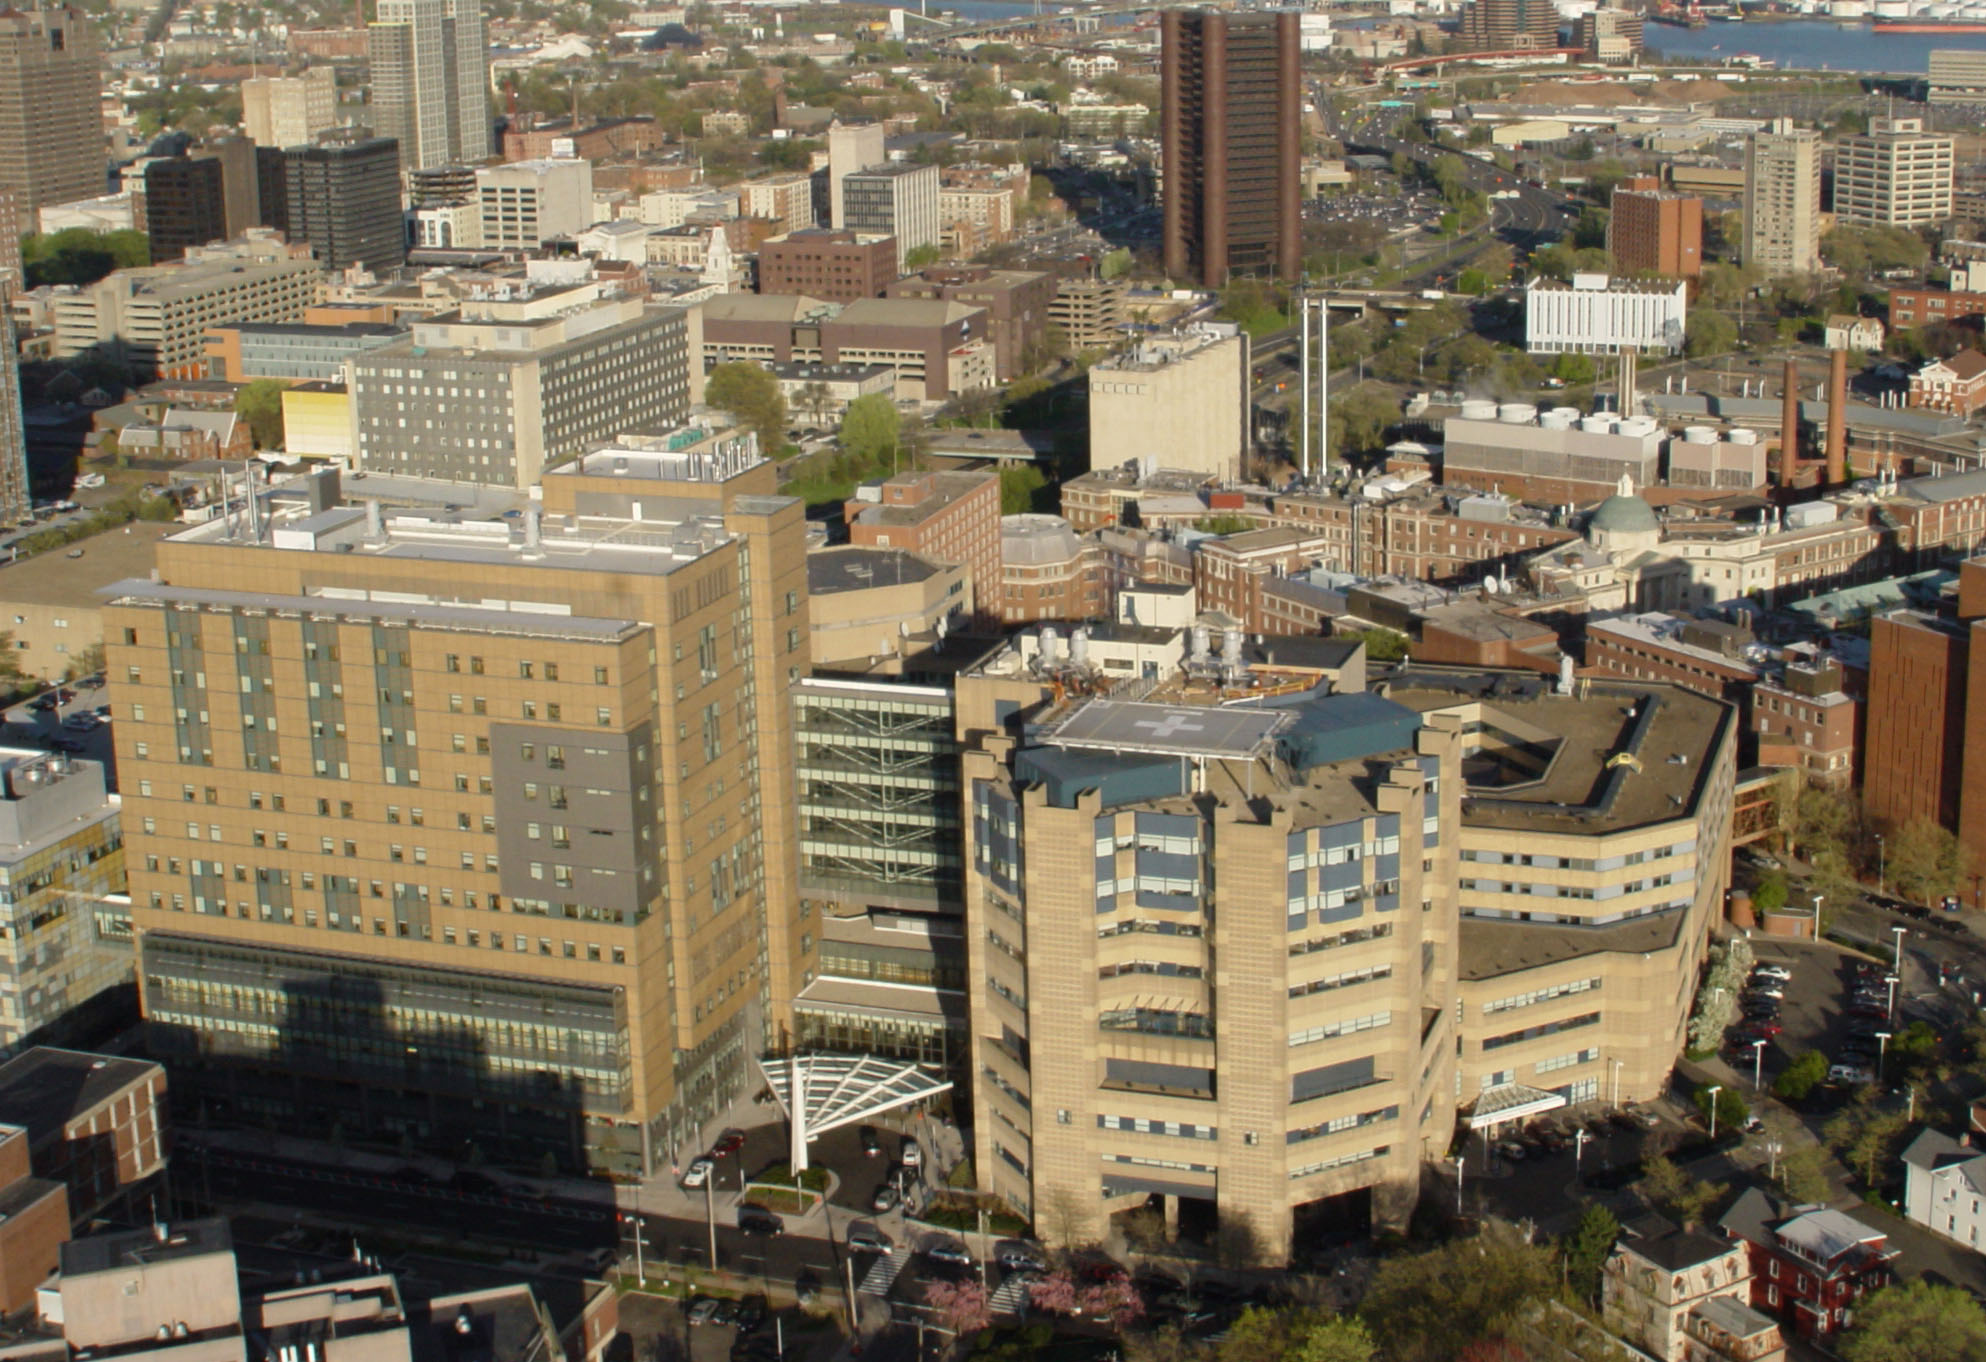 File Aerial Closeup Ynhh 2010 Jpg Wikimedia Commons